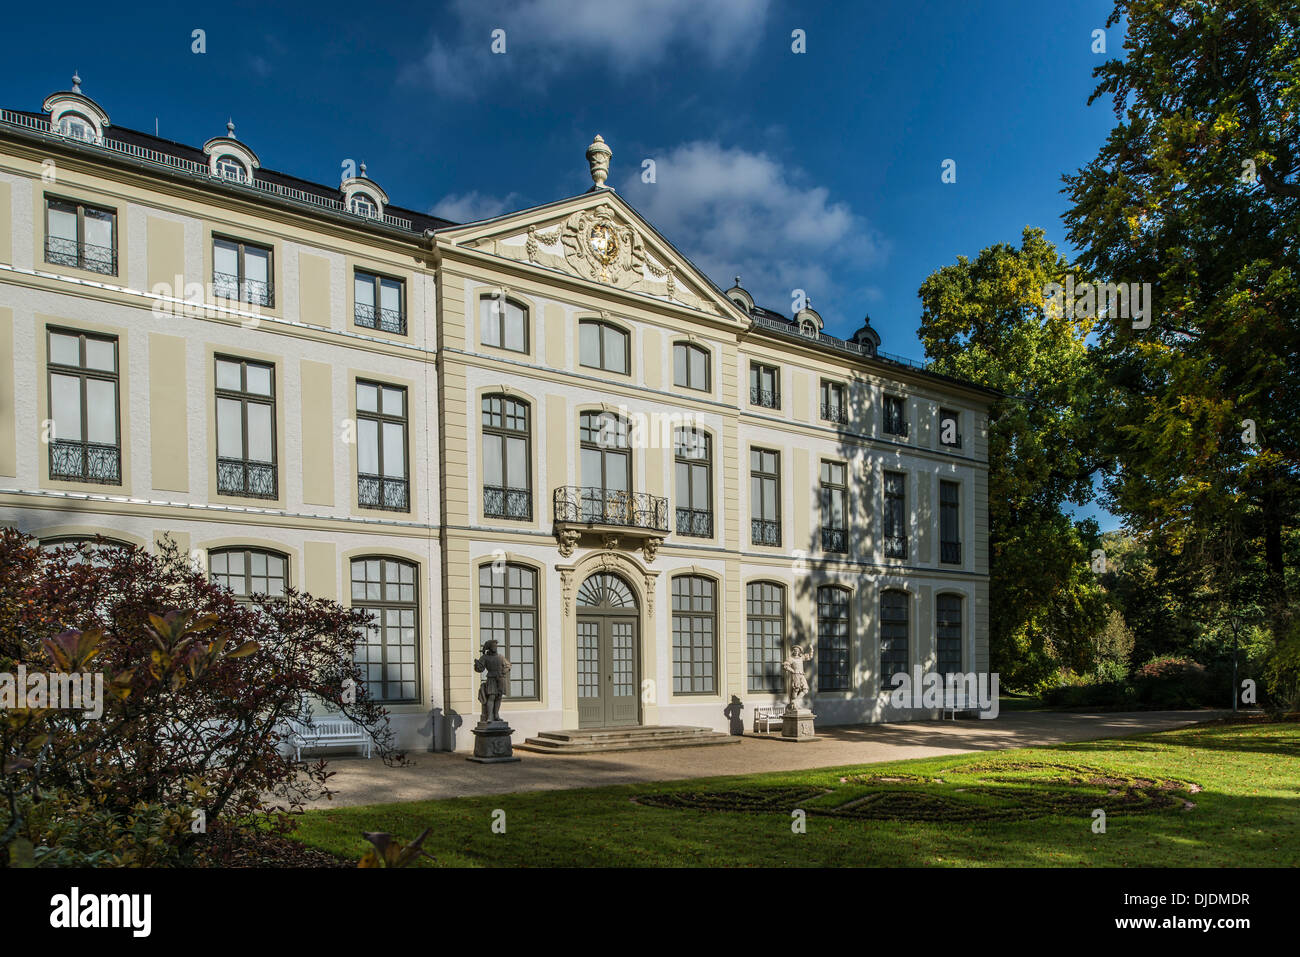 Summer Palais in the landscaped park, early Classicism, 18th century, Greiz, Thuringia, Germany - Stock Image